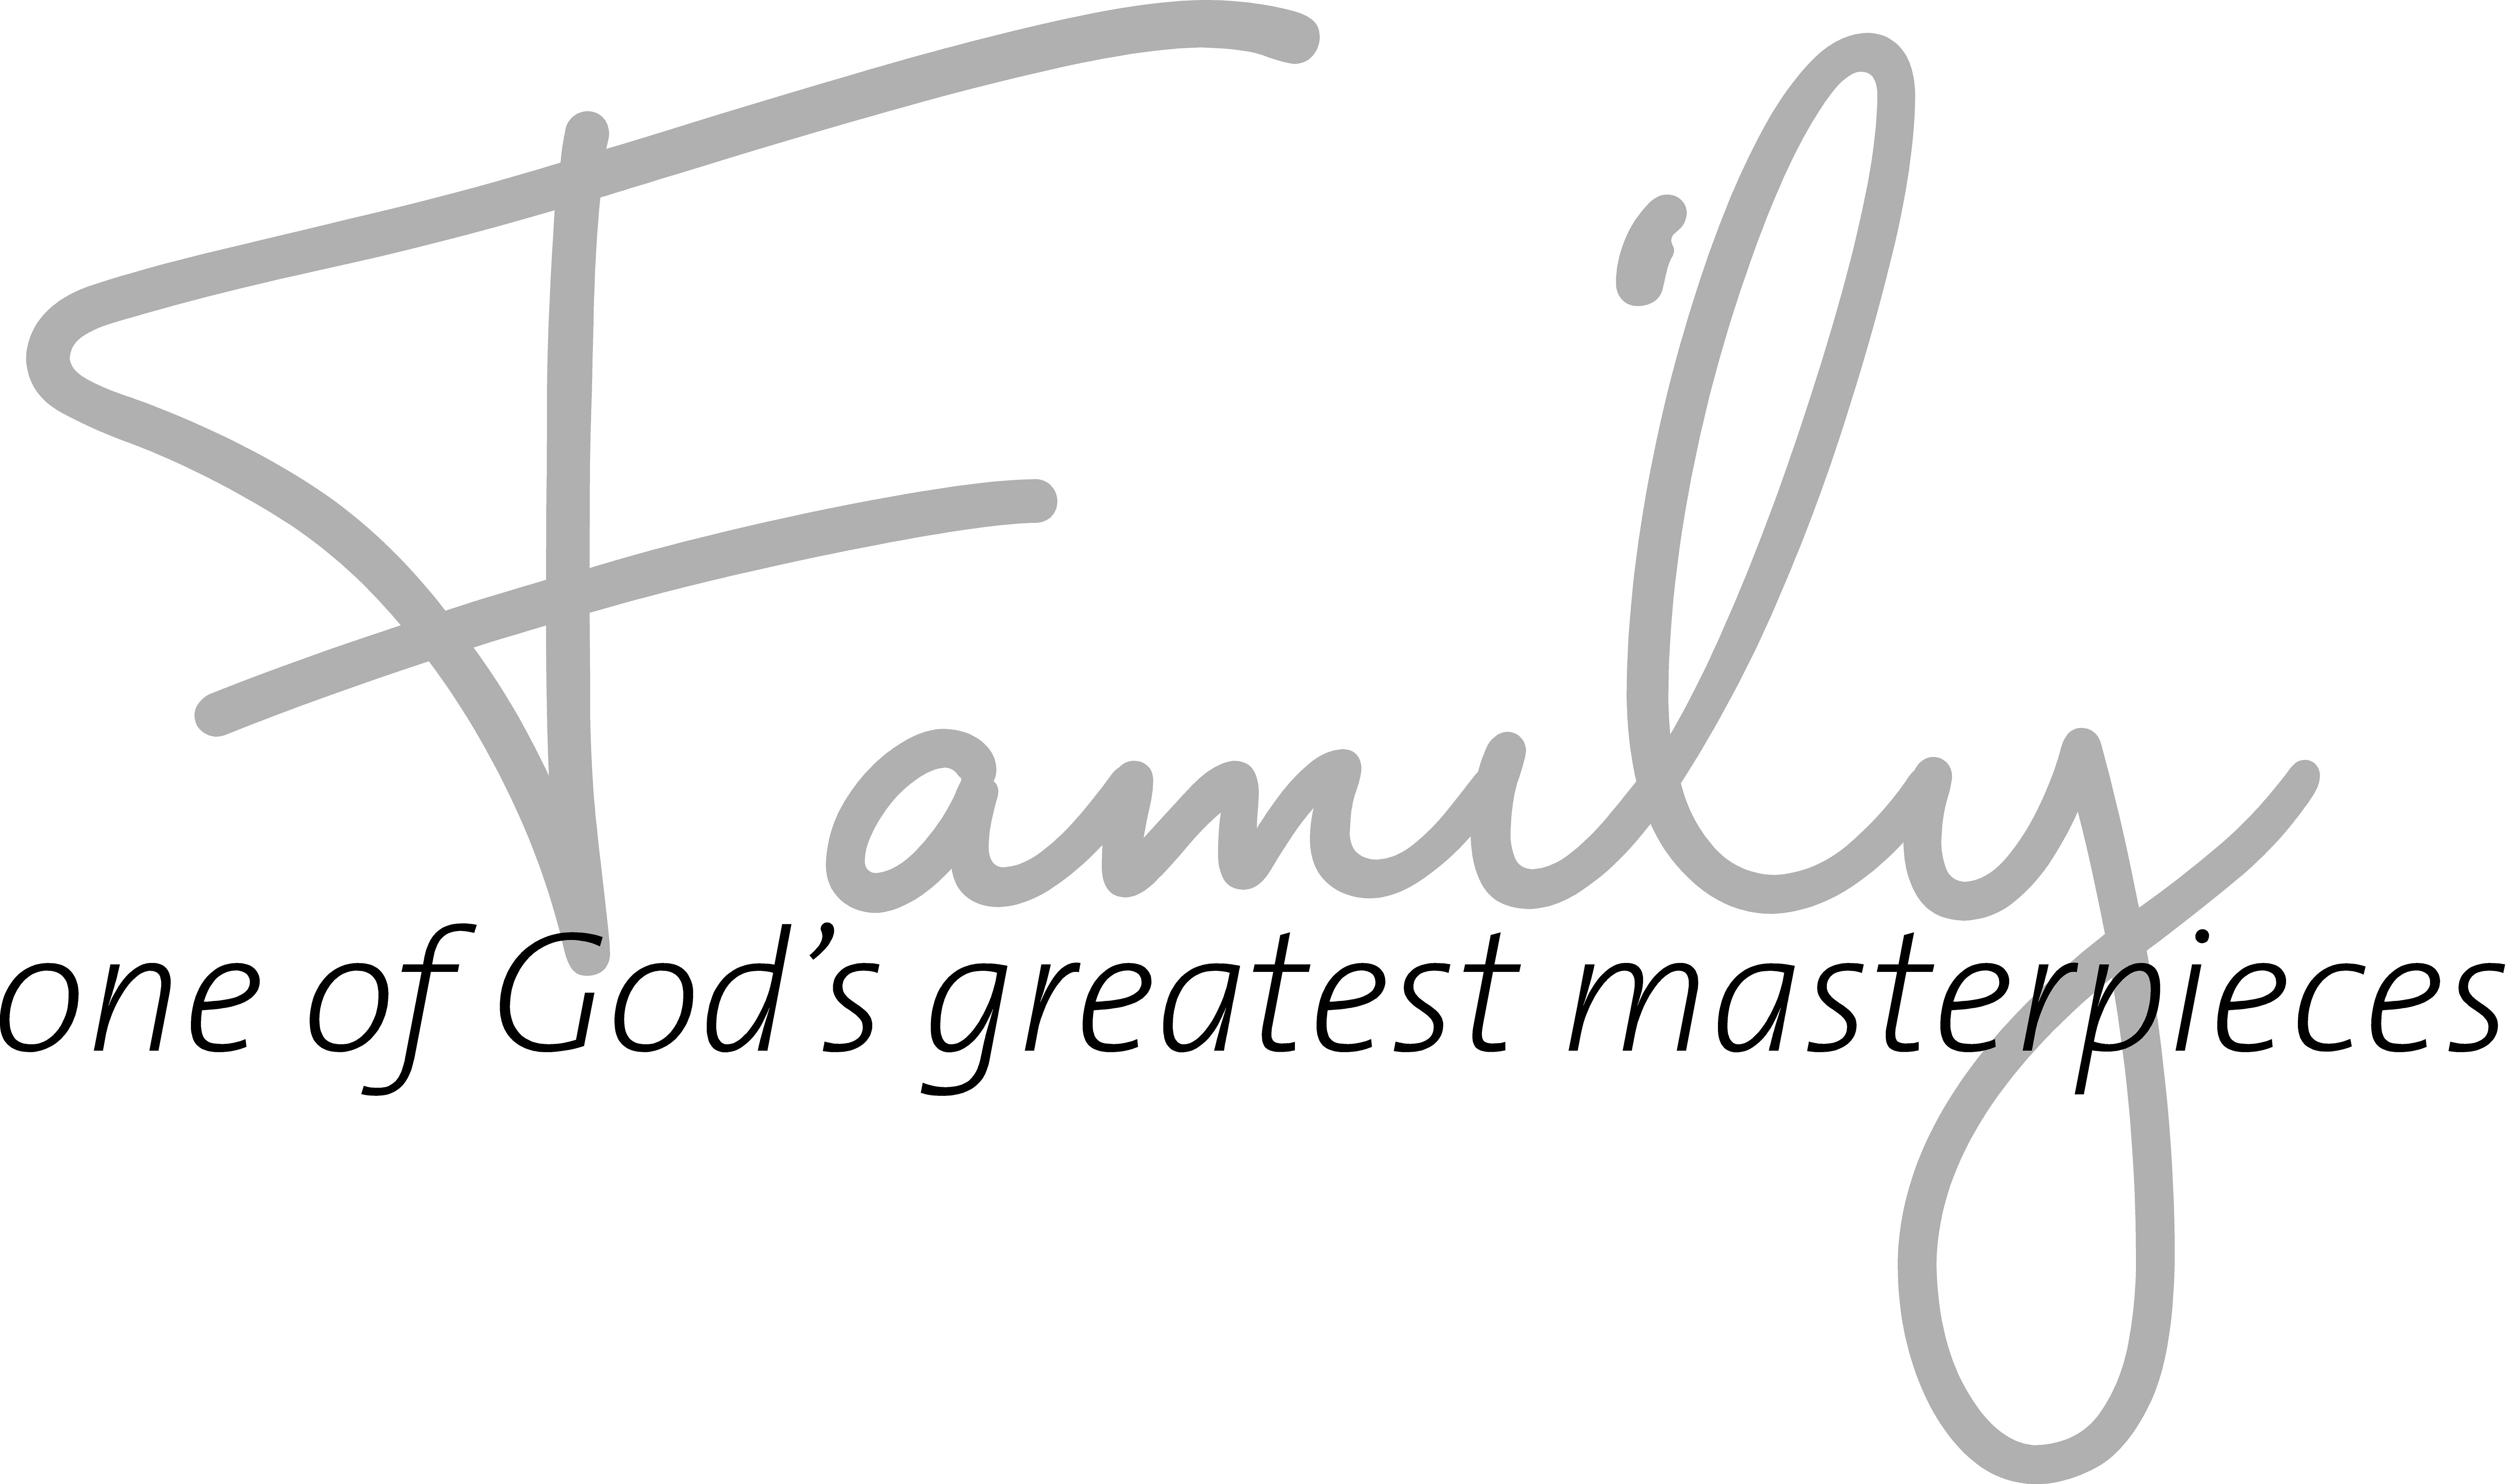 Familyone Of Gods Greatest Masterpieces Quote The Walls